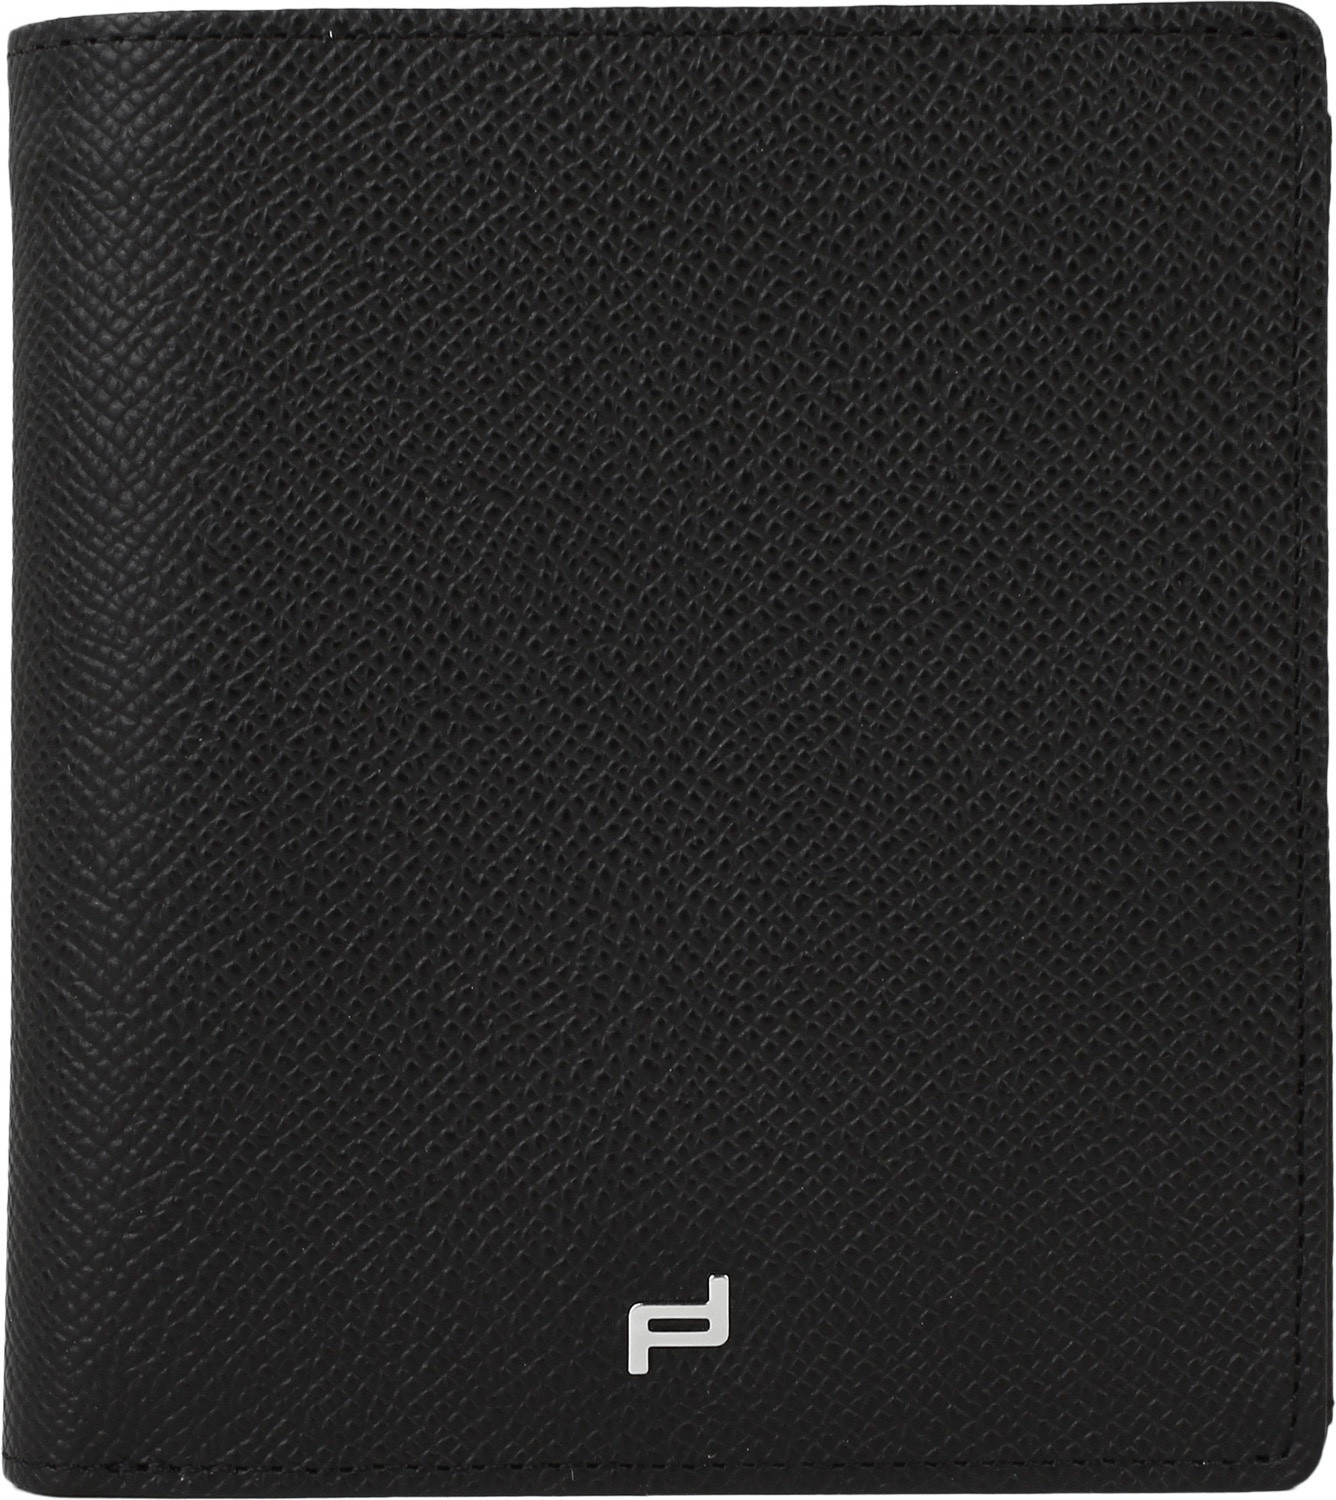 Porsche Design French Classic 3.0 black (4090001813)